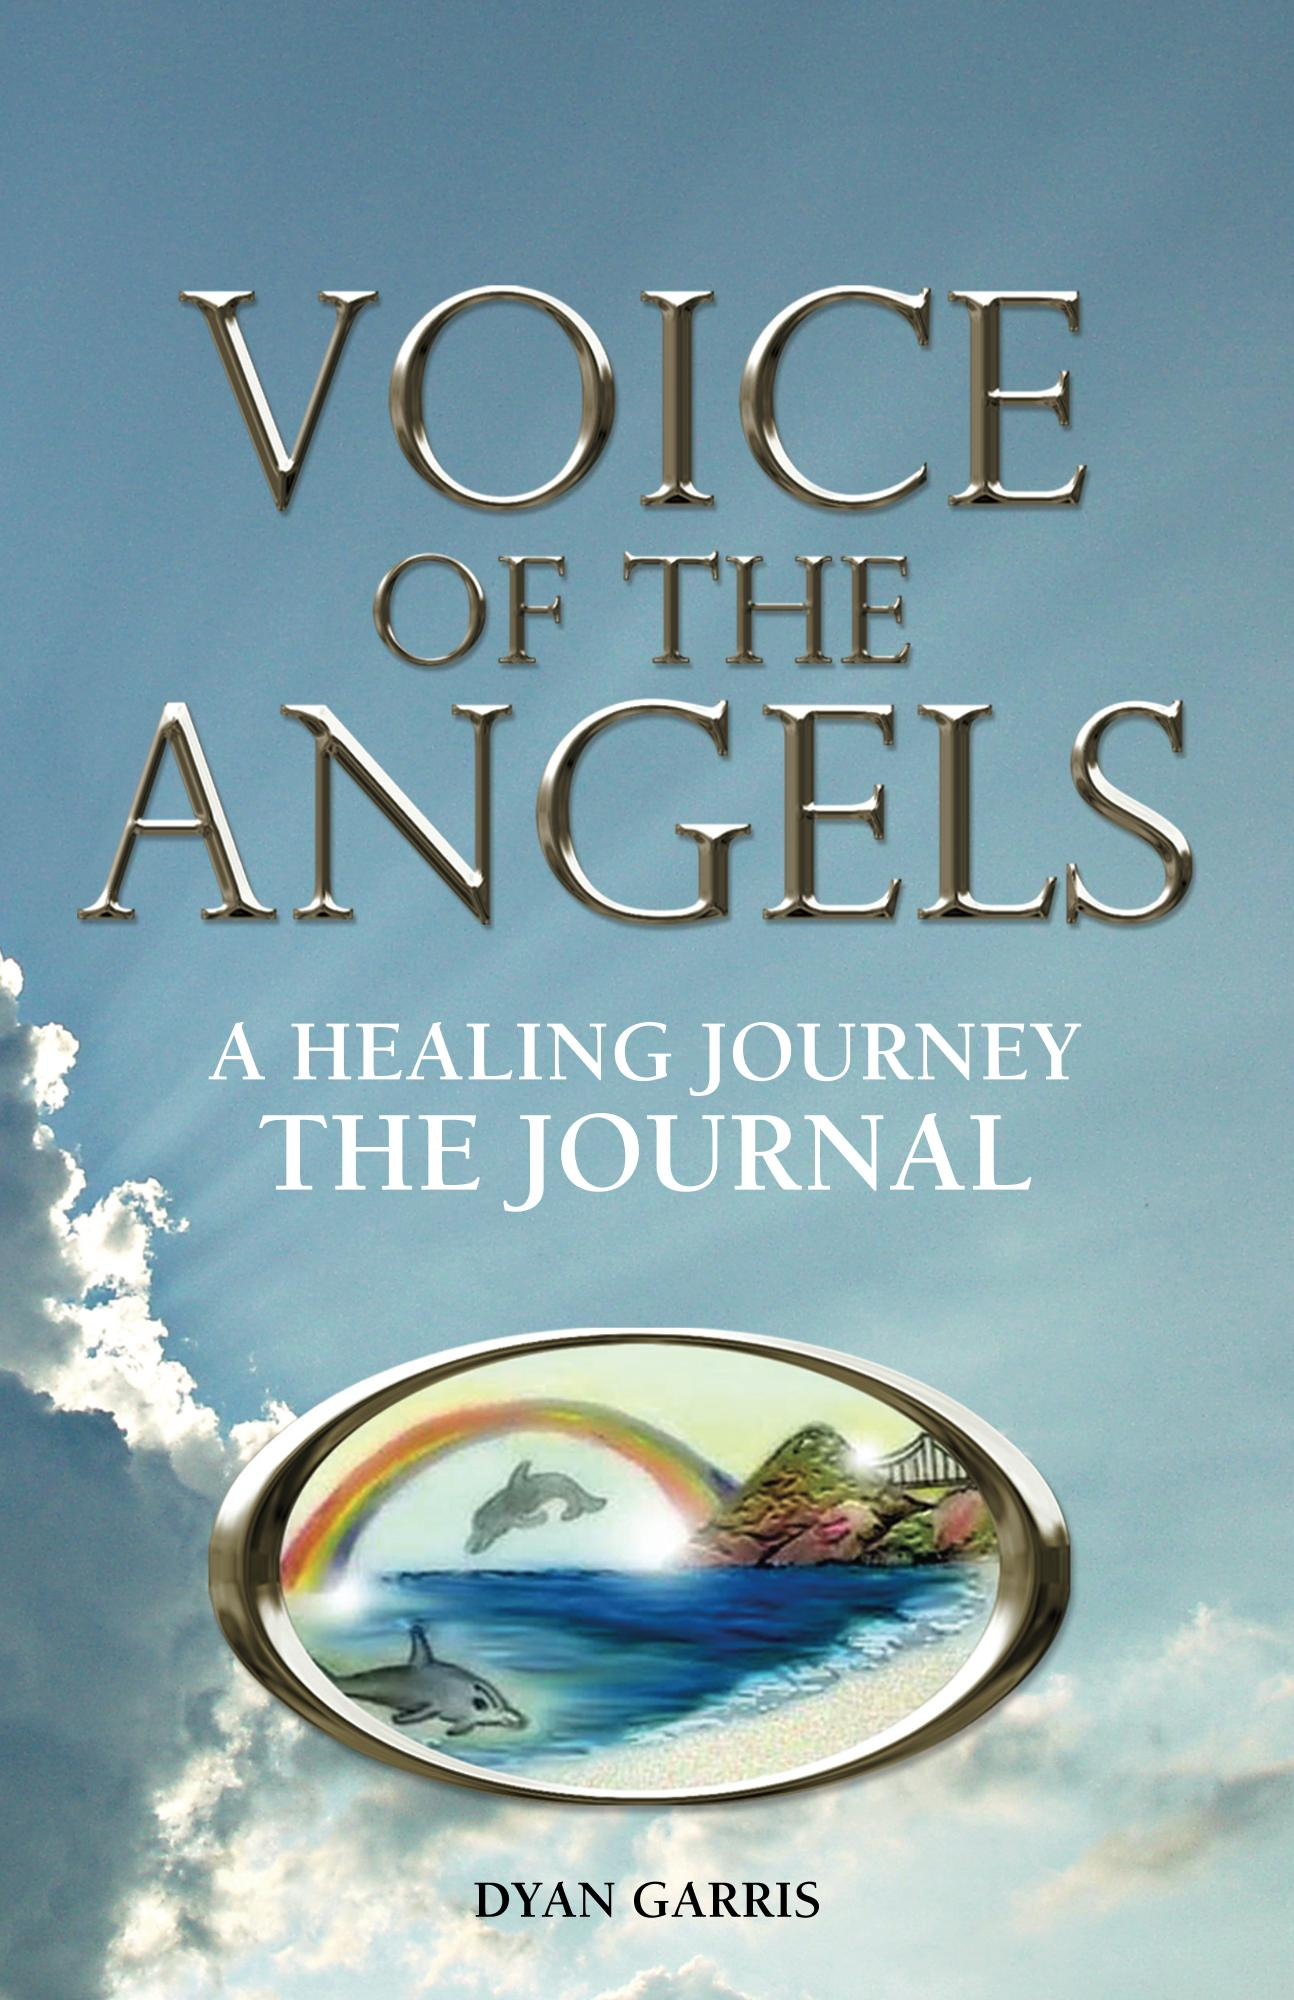 Voice_of_the_Angels_JOURNAL_Cover_for_Kindle